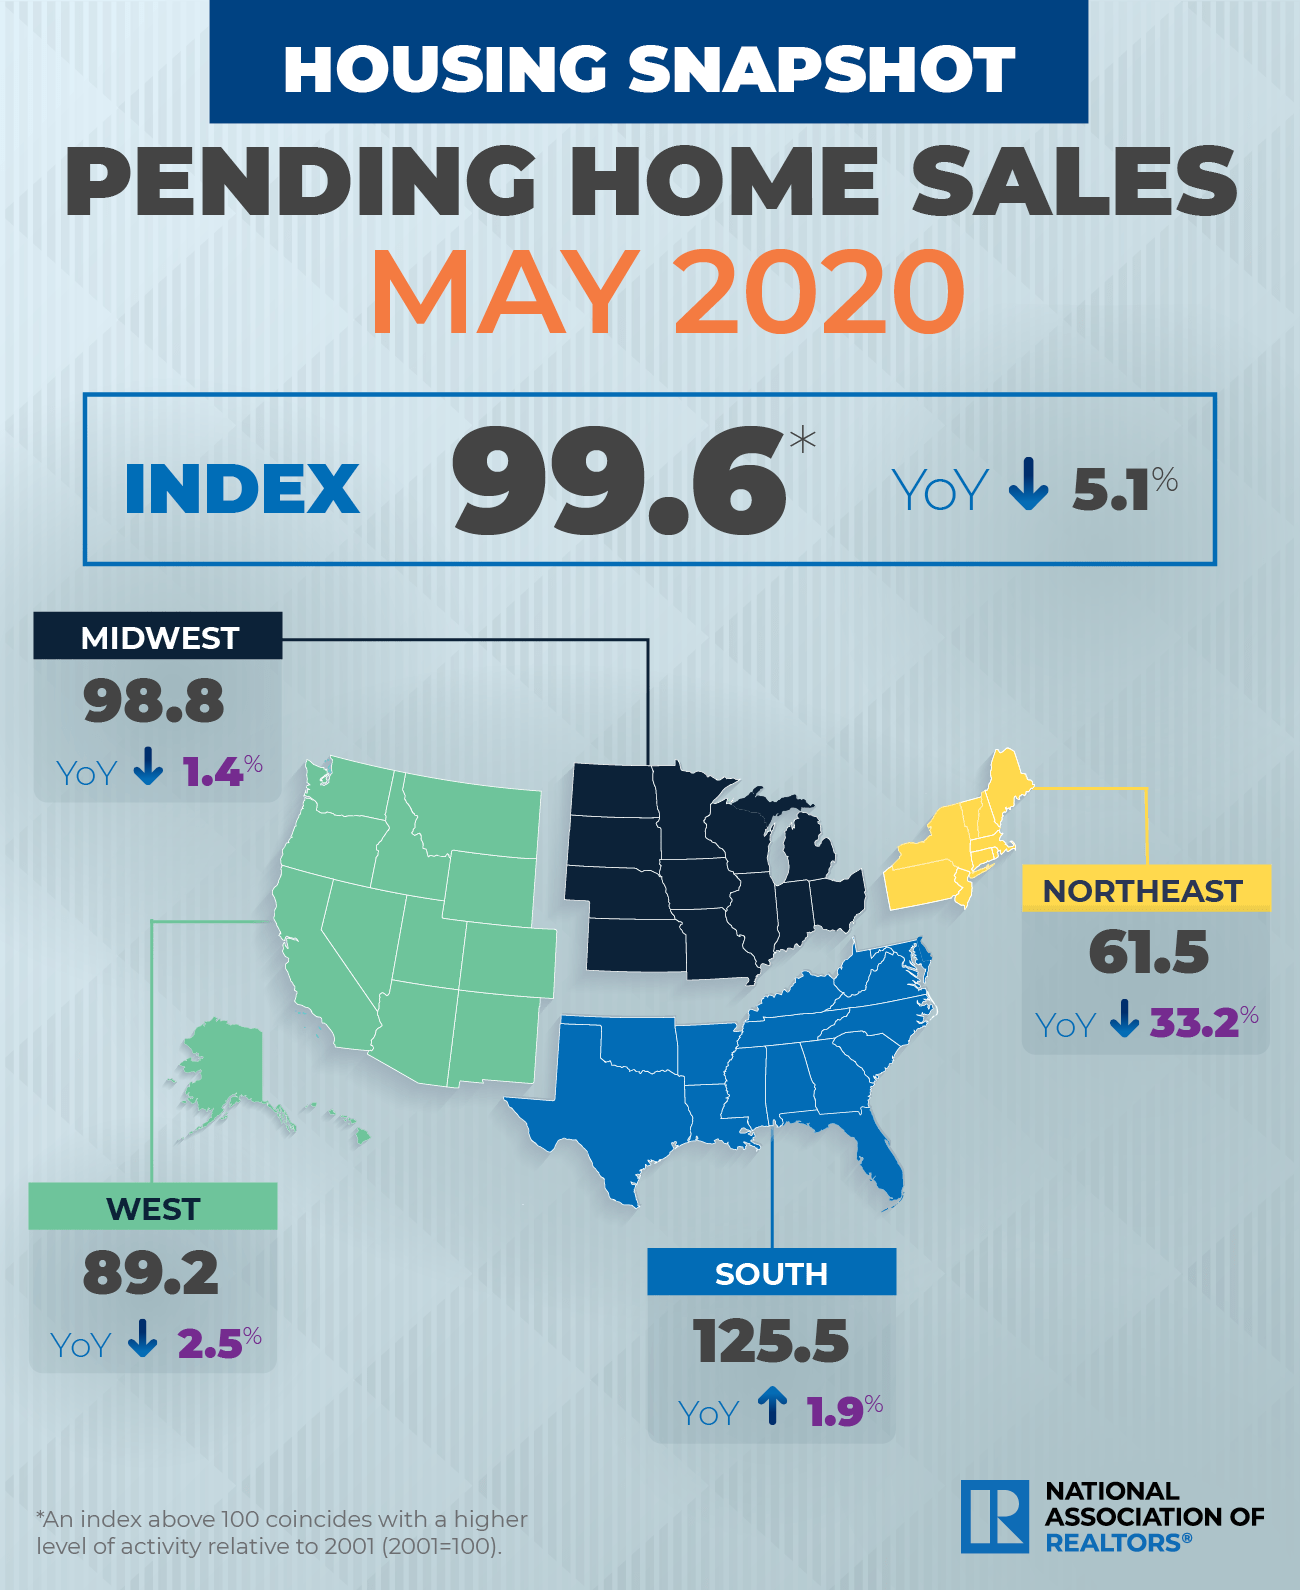 NAR Pending home sales May 2020. Visit source link at the end of this article for more information.